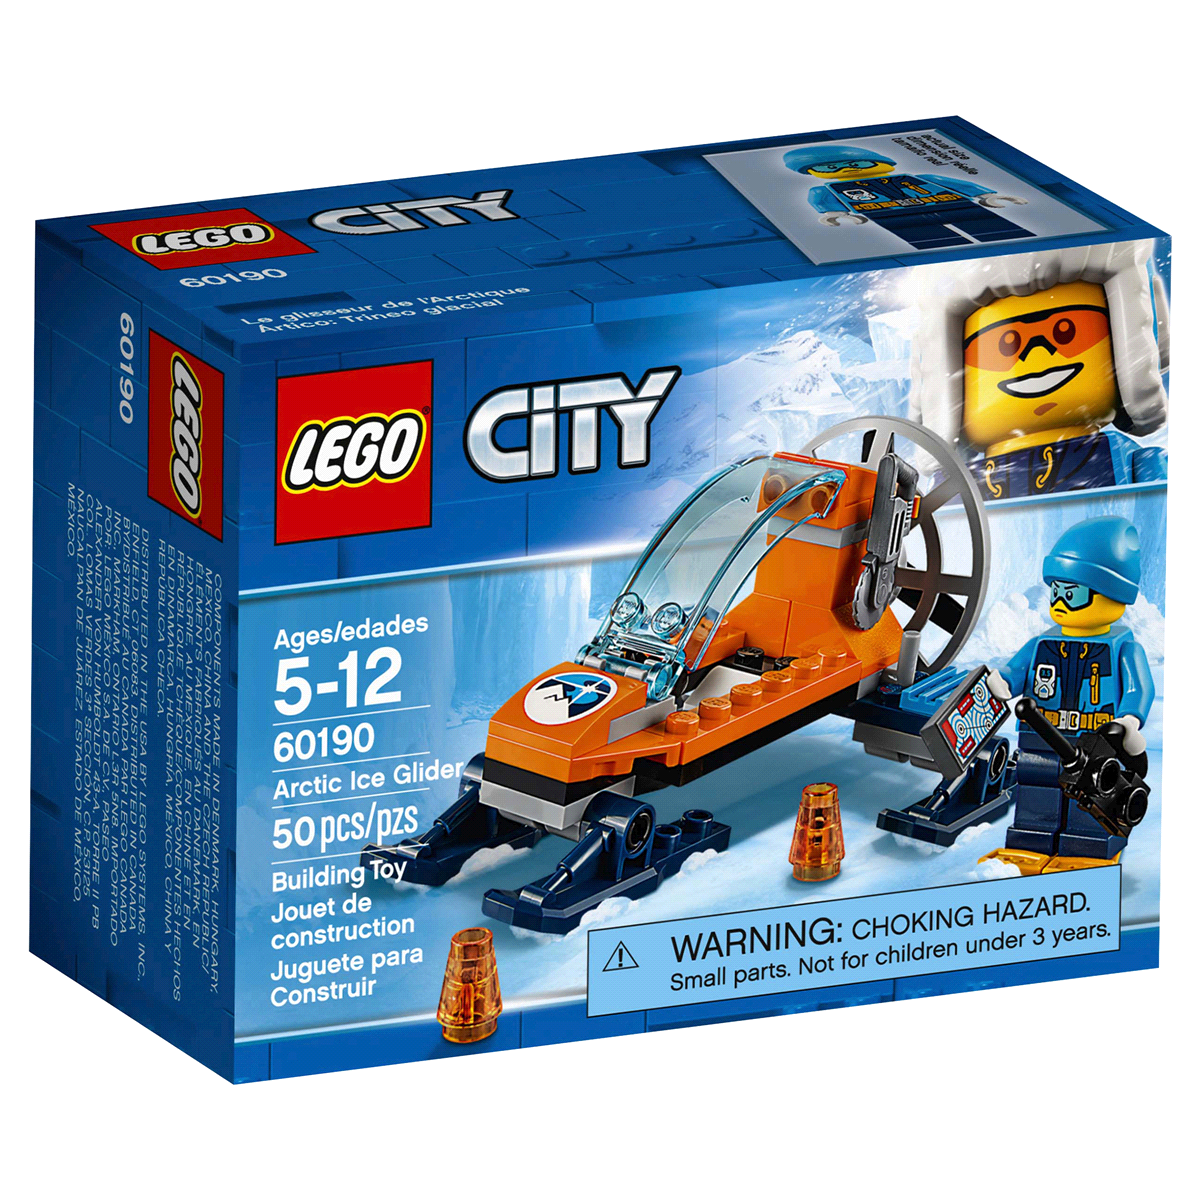 slide 4 of 8, LEGO City Arctic Expedition Ice Glider 60190,